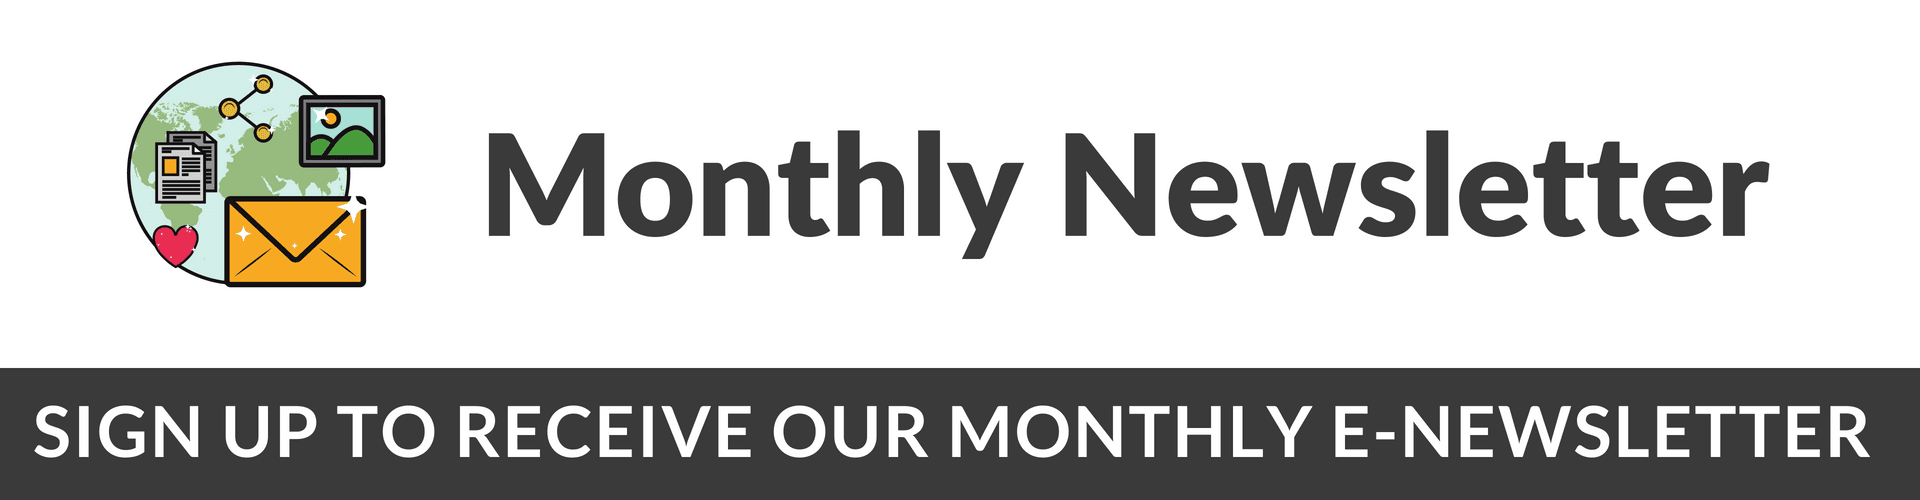 Monthly eNewsletter Information and Sign Up information